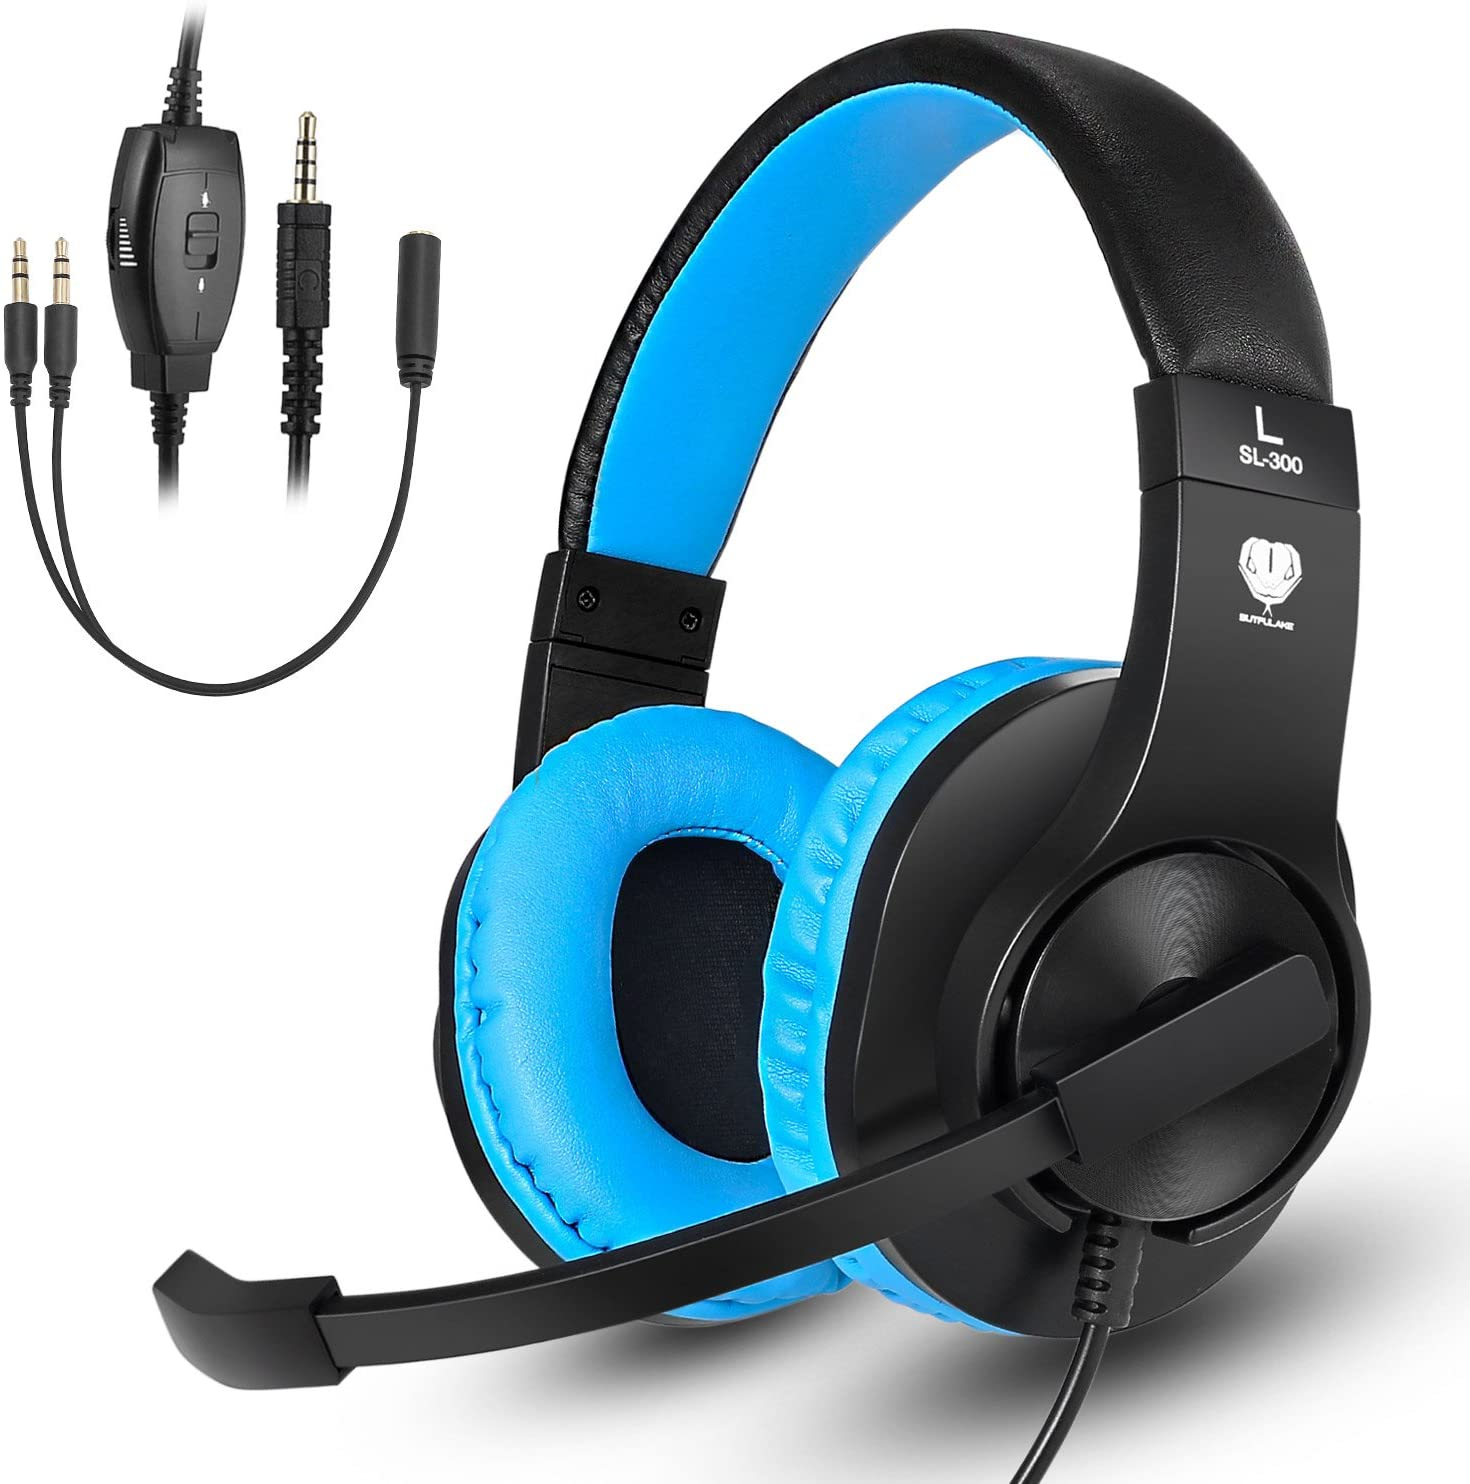 ShinePick 3.5mm PS4 Gaming Headset with Microphone and Volume Control Compatible with PS4, New Xbox One, Xbox One S, Xbox One X, Nintendo Switch, PC(Blue)